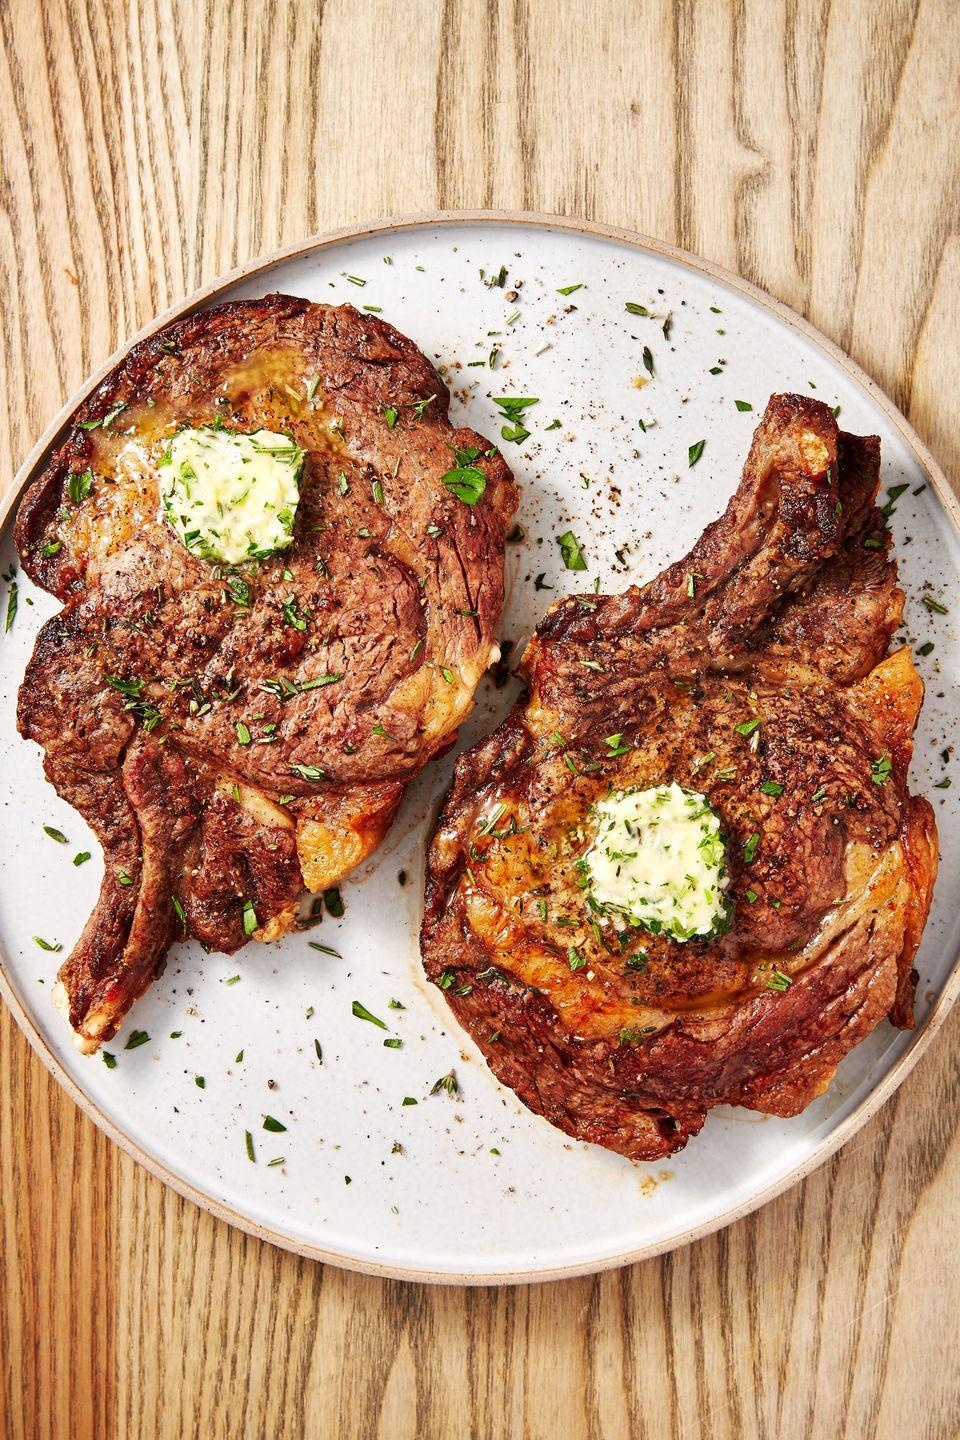 """<p>A perfectly seared steak with a tab of herb butter that's all diet-friendly? Now, <em>that's</em> our kind of recipe.</p><p>Get the recipe from <a href=""""https://www.delish.com/cooking/recipe-ideas/a28638368/air-fryer-steak-recipe/"""" rel=""""nofollow noopener"""" target=""""_blank"""" data-ylk=""""slk:Delish"""" class=""""link rapid-noclick-resp"""">Delish</a>.</p>"""